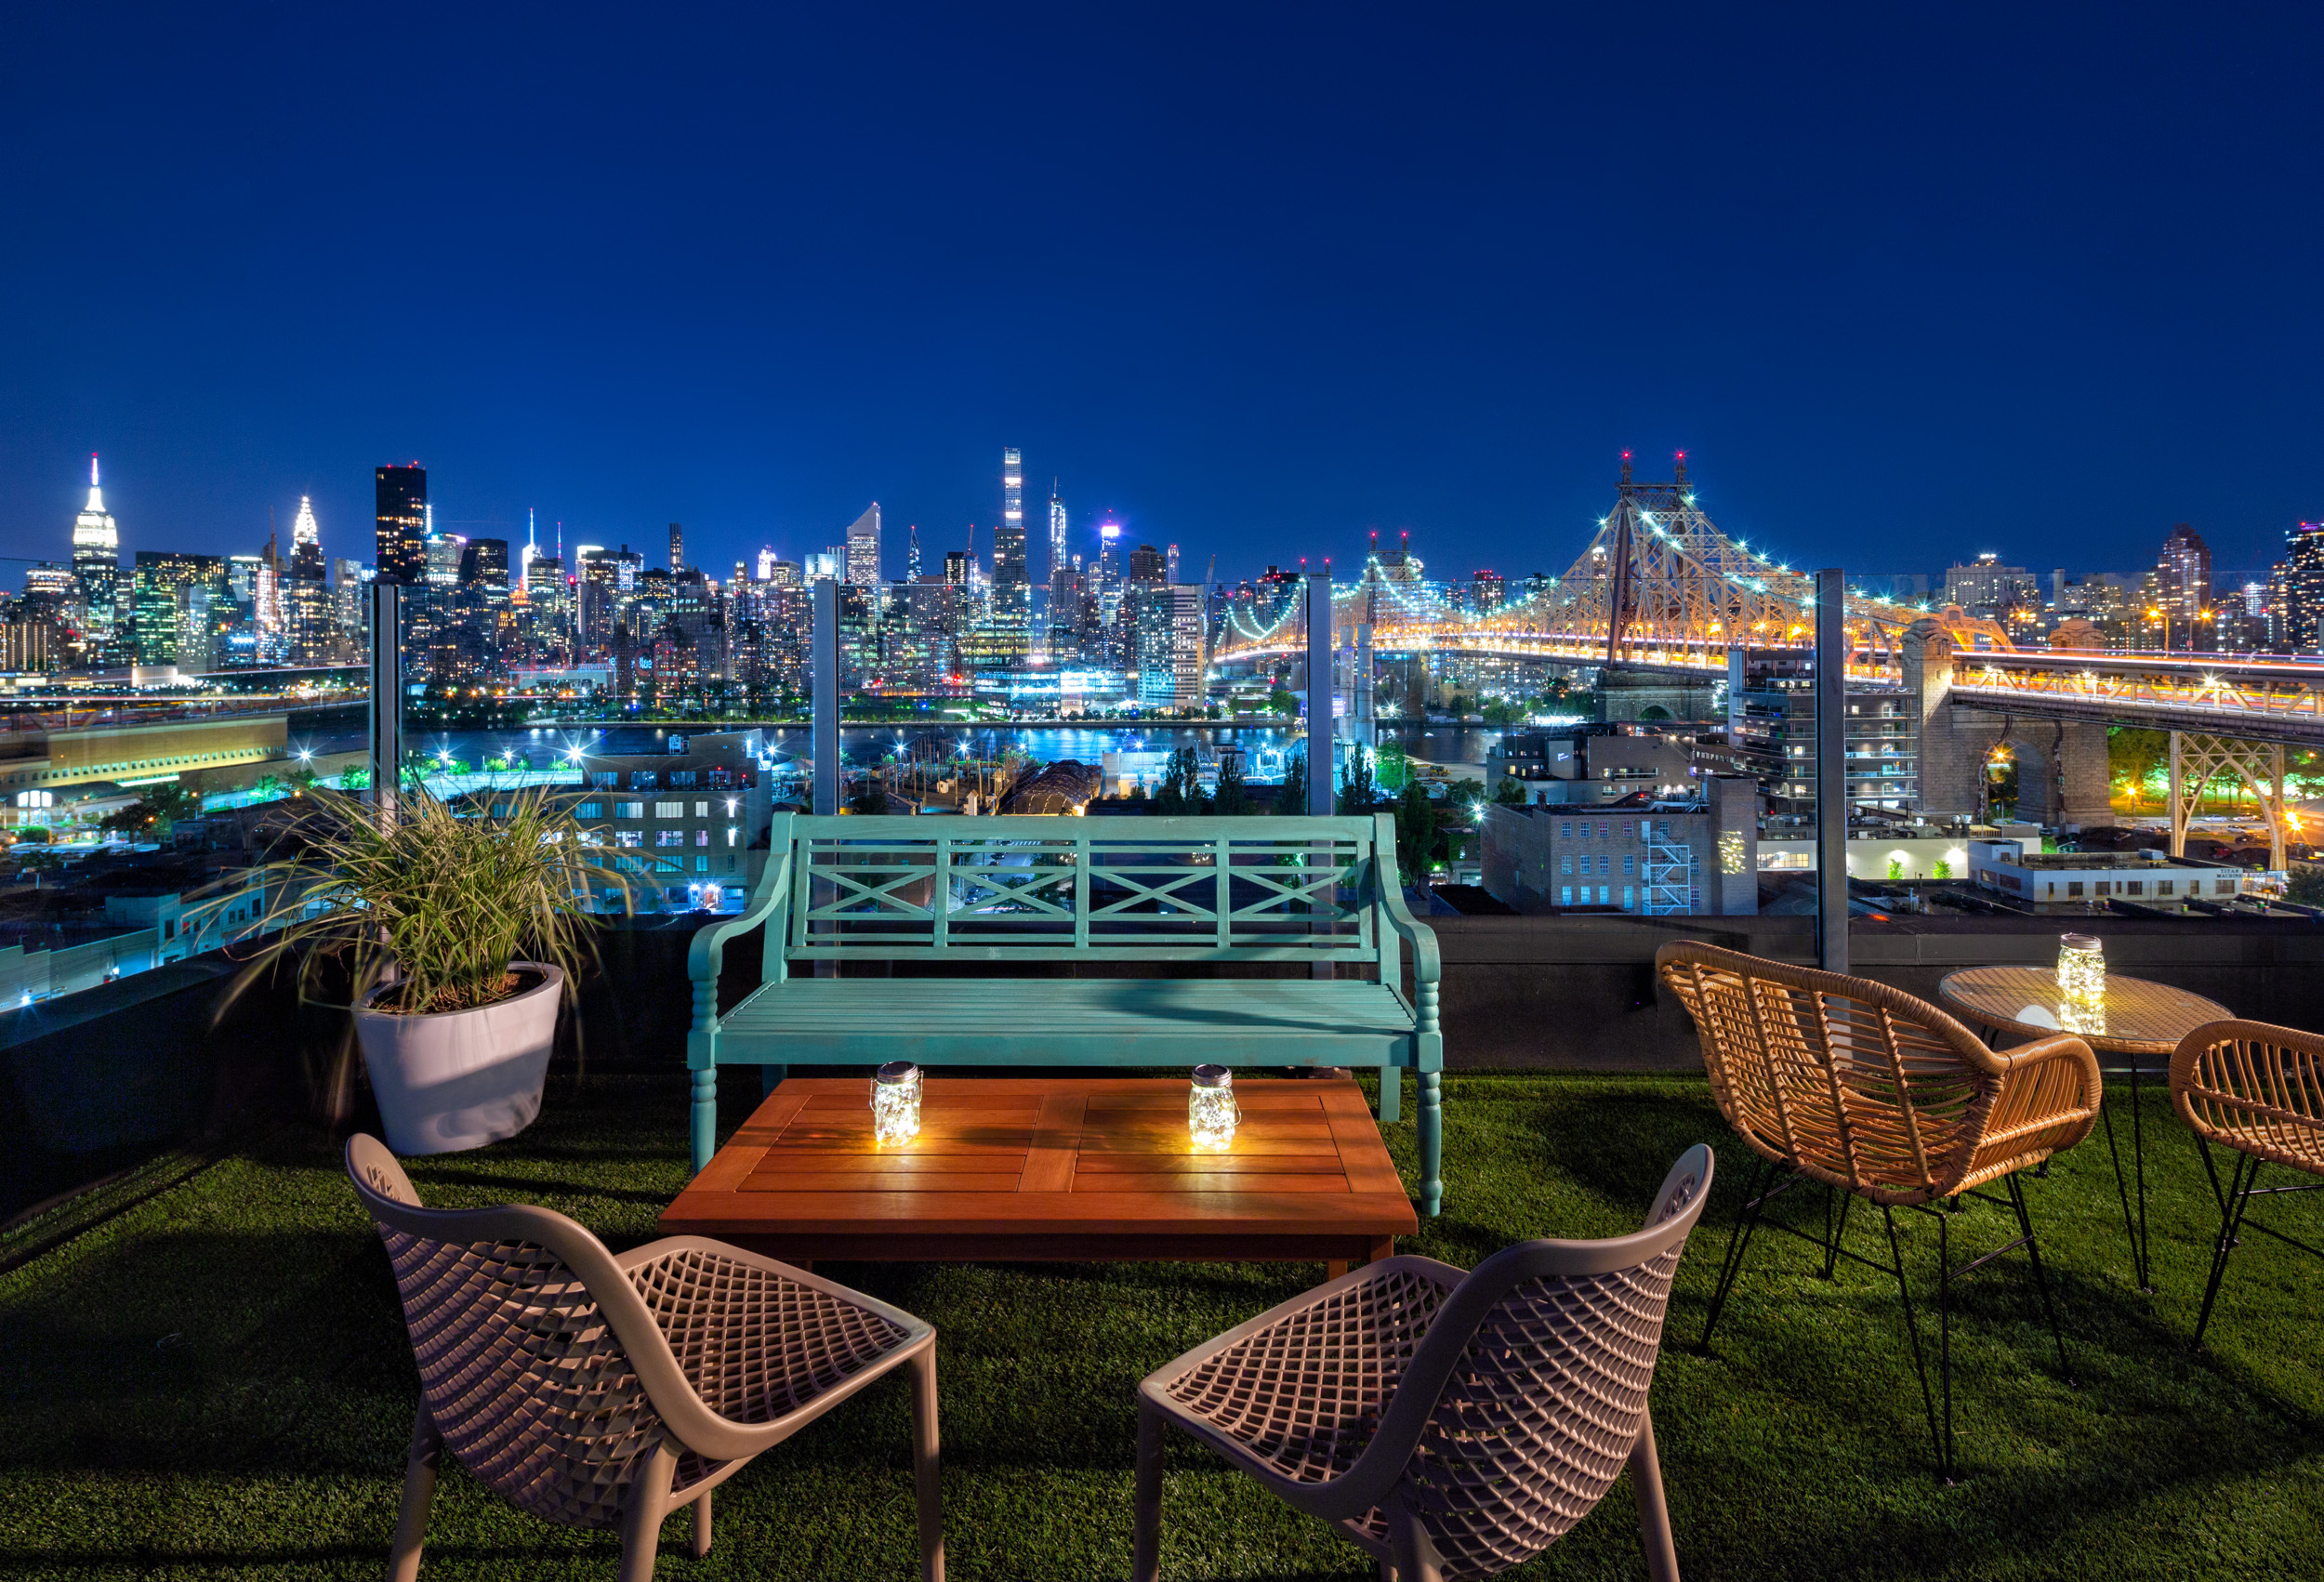 Savanna Rooftop event space in New York City, NYC, NY/NJ Area